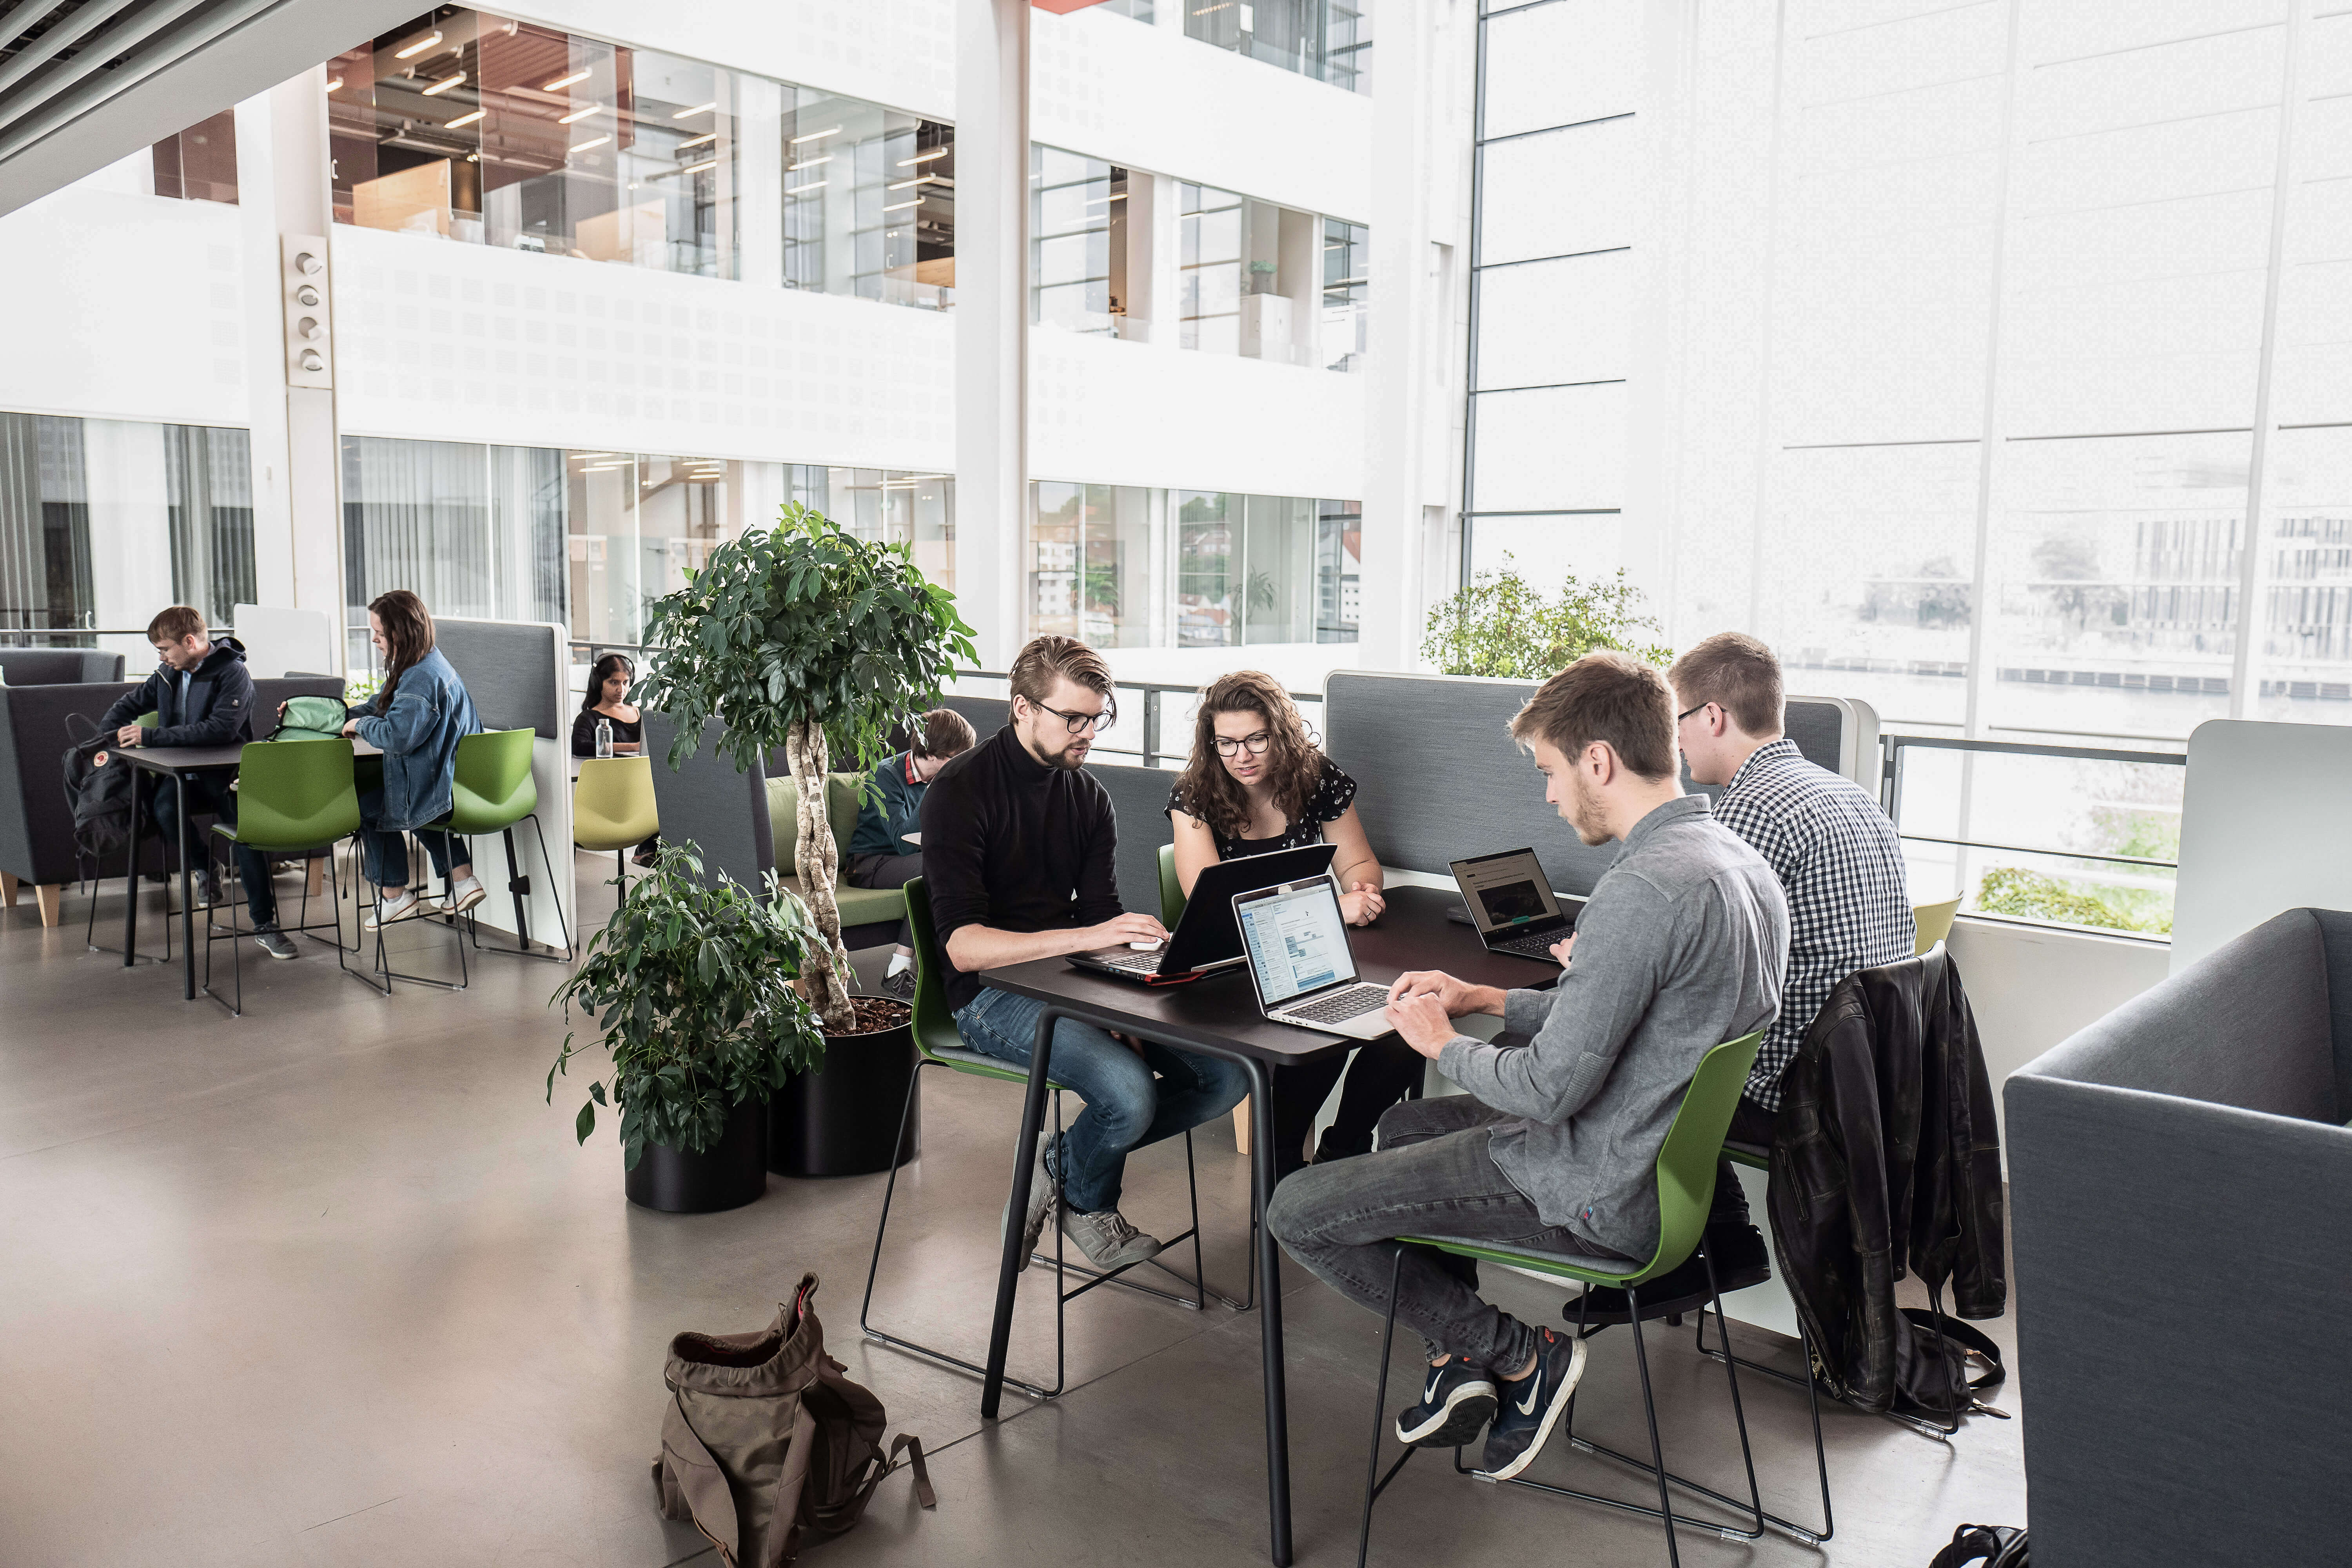 University of Southern Denmark: Your first engineering job guaranteed